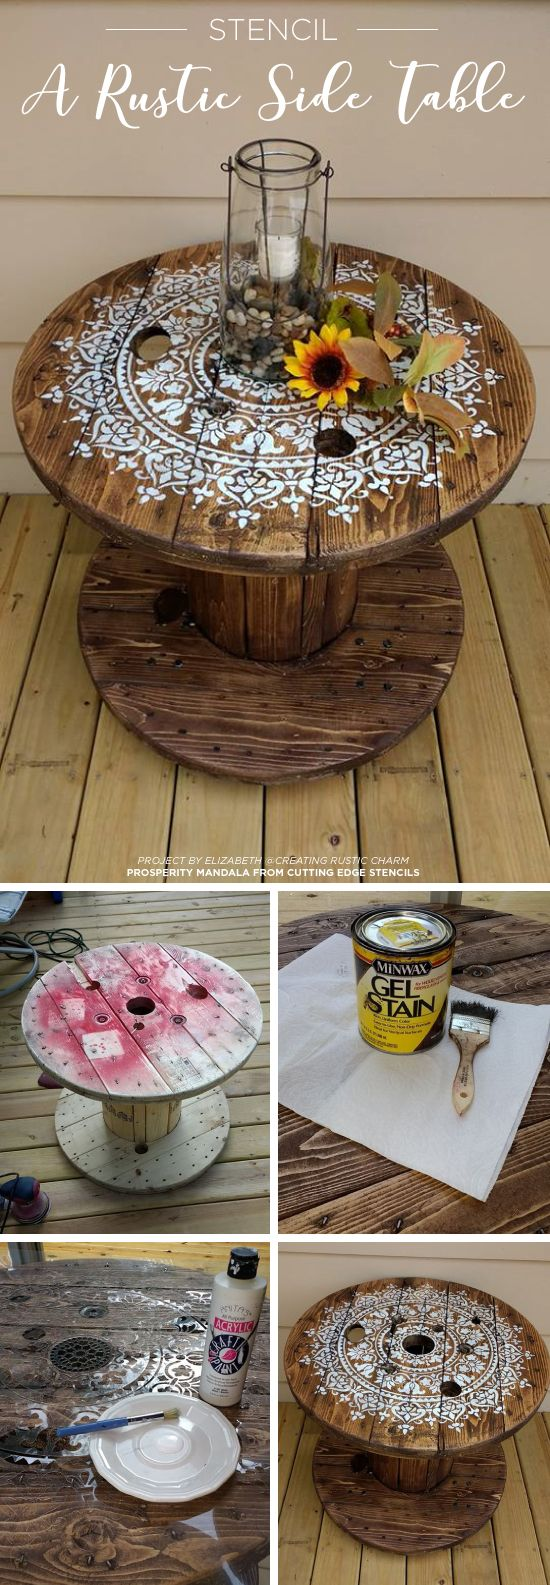 Cutting Edge Stencils shares how to upcycle a wooden spool into a table using the Prosperity Mandala pattern. http://www.cuttingedgestencils.com/prosperity-mandala-stencil-yoga-mandala-stencils-designs.html